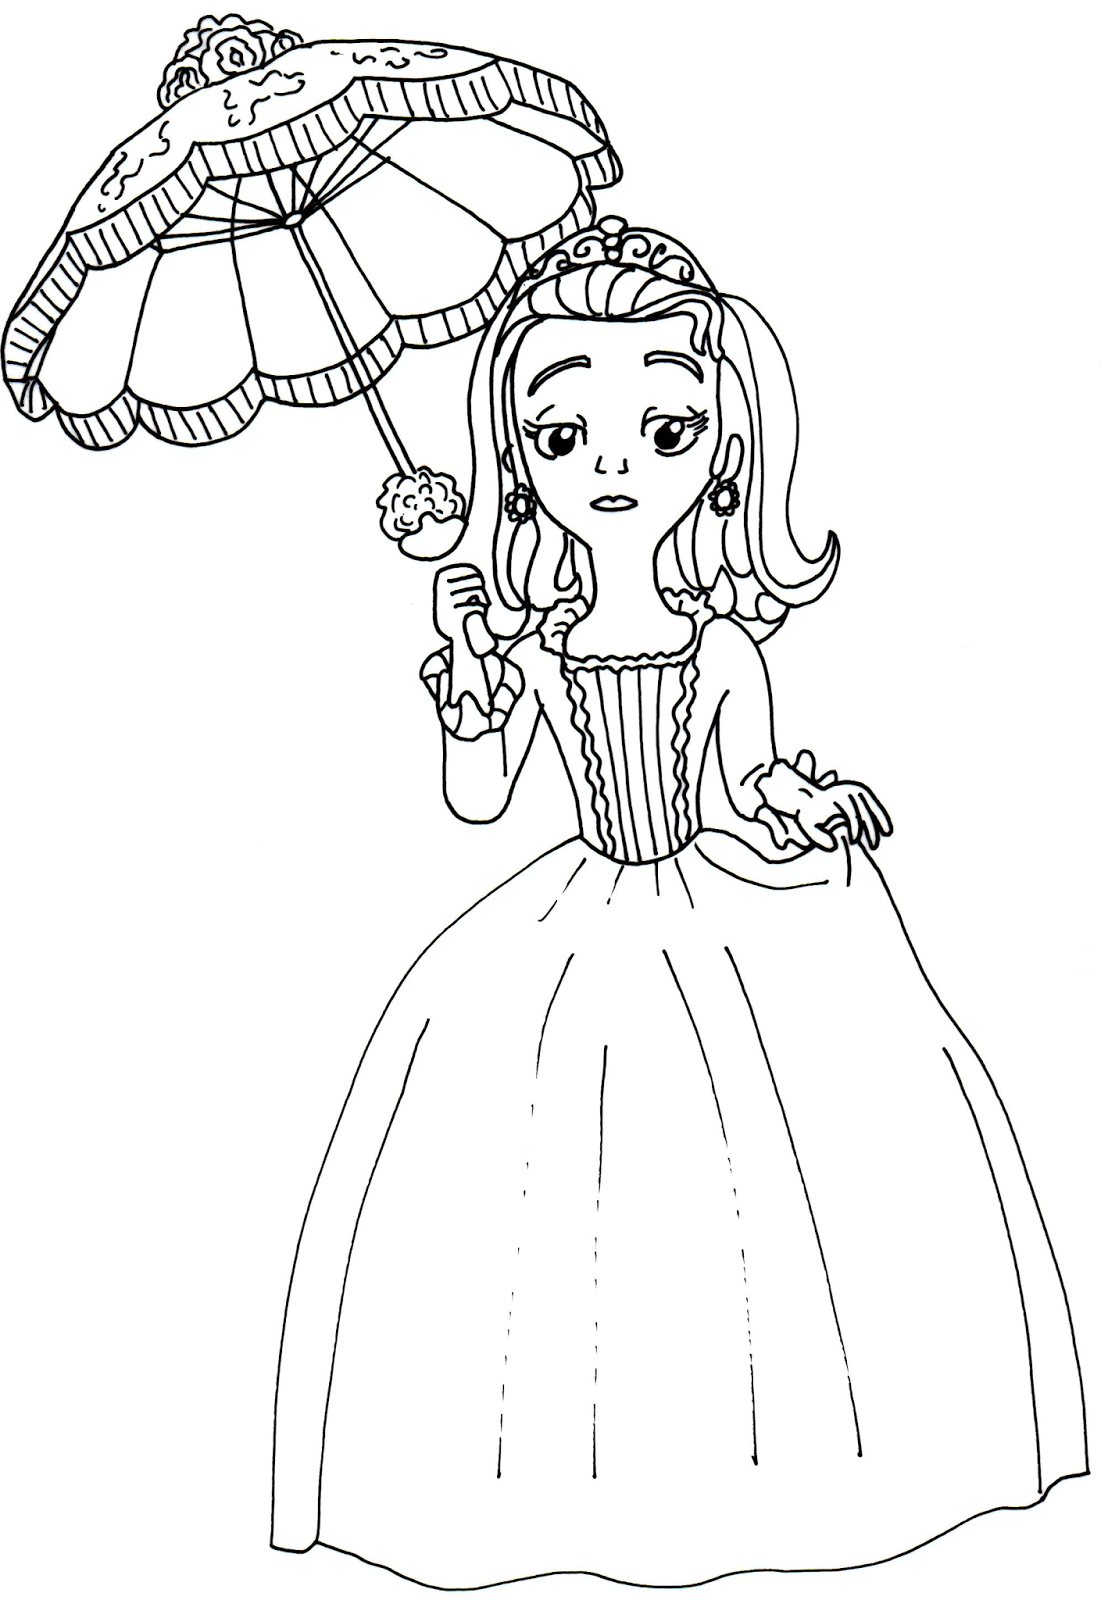 Sofia The First Coloring Pages: Amber Coloring Page